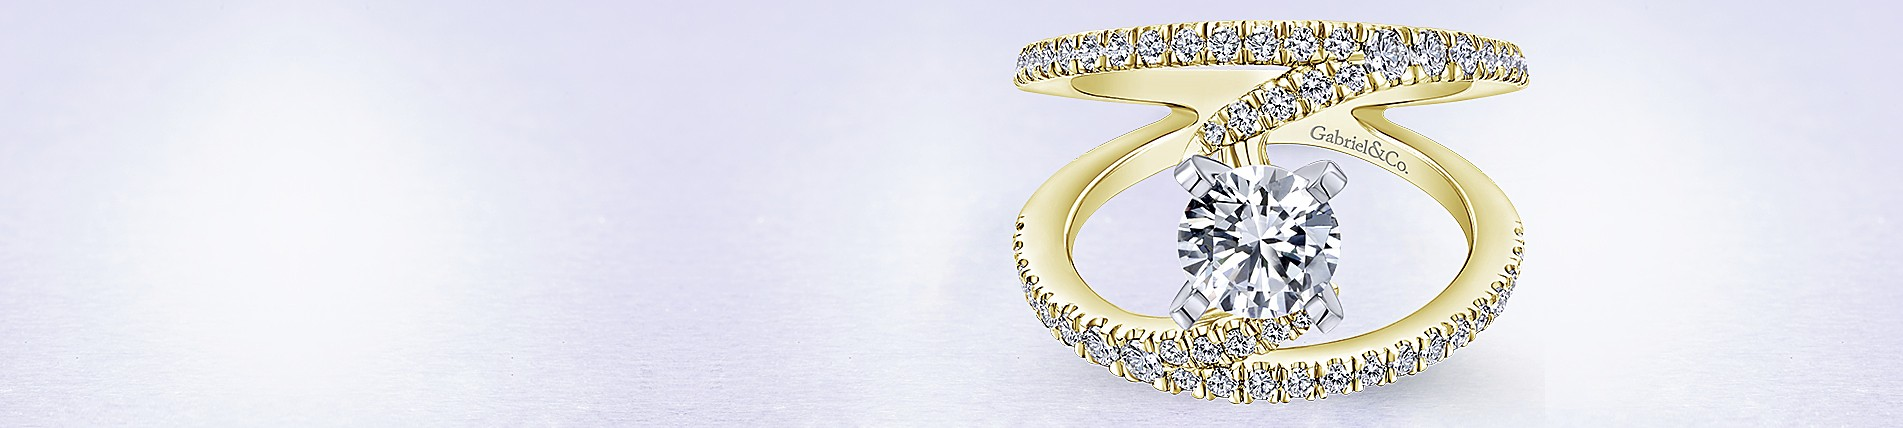 round jewelry yg lacey ring white in gold cut diamond yellow trail filigree with halo antique jewellery rings engagement dome nl